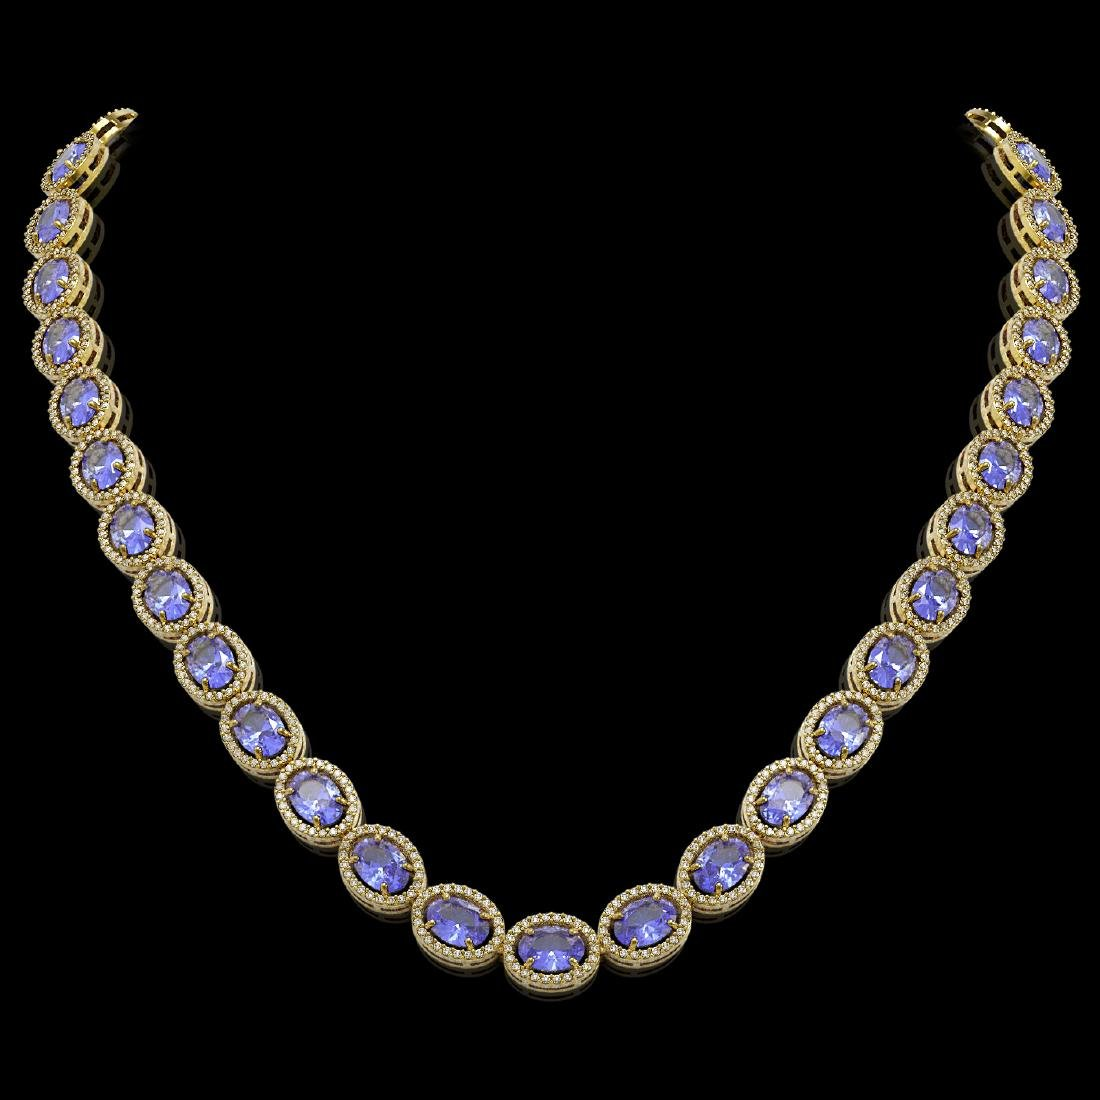 48.65 CTW Tanzanite & Diamond Halo Necklace 10K Yellow